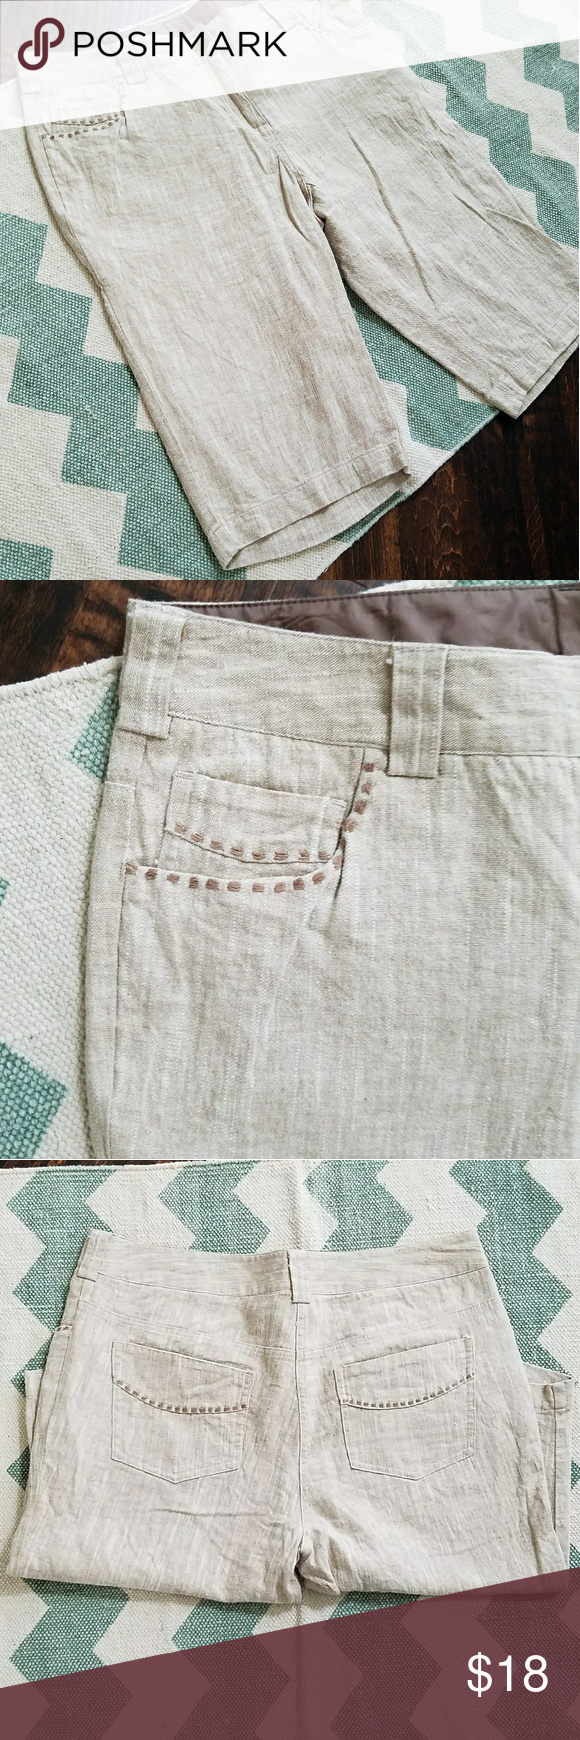 Willi Smith linen shorts Size 10 Inseam- 14 inches Waist - 16 inches (measured flat)  Photos are the description of this item. Any flaws will be noted. Otherwise article is in good-excellent condition.  Feel free to ask questions ? Willi Smith Shorts Bermudas